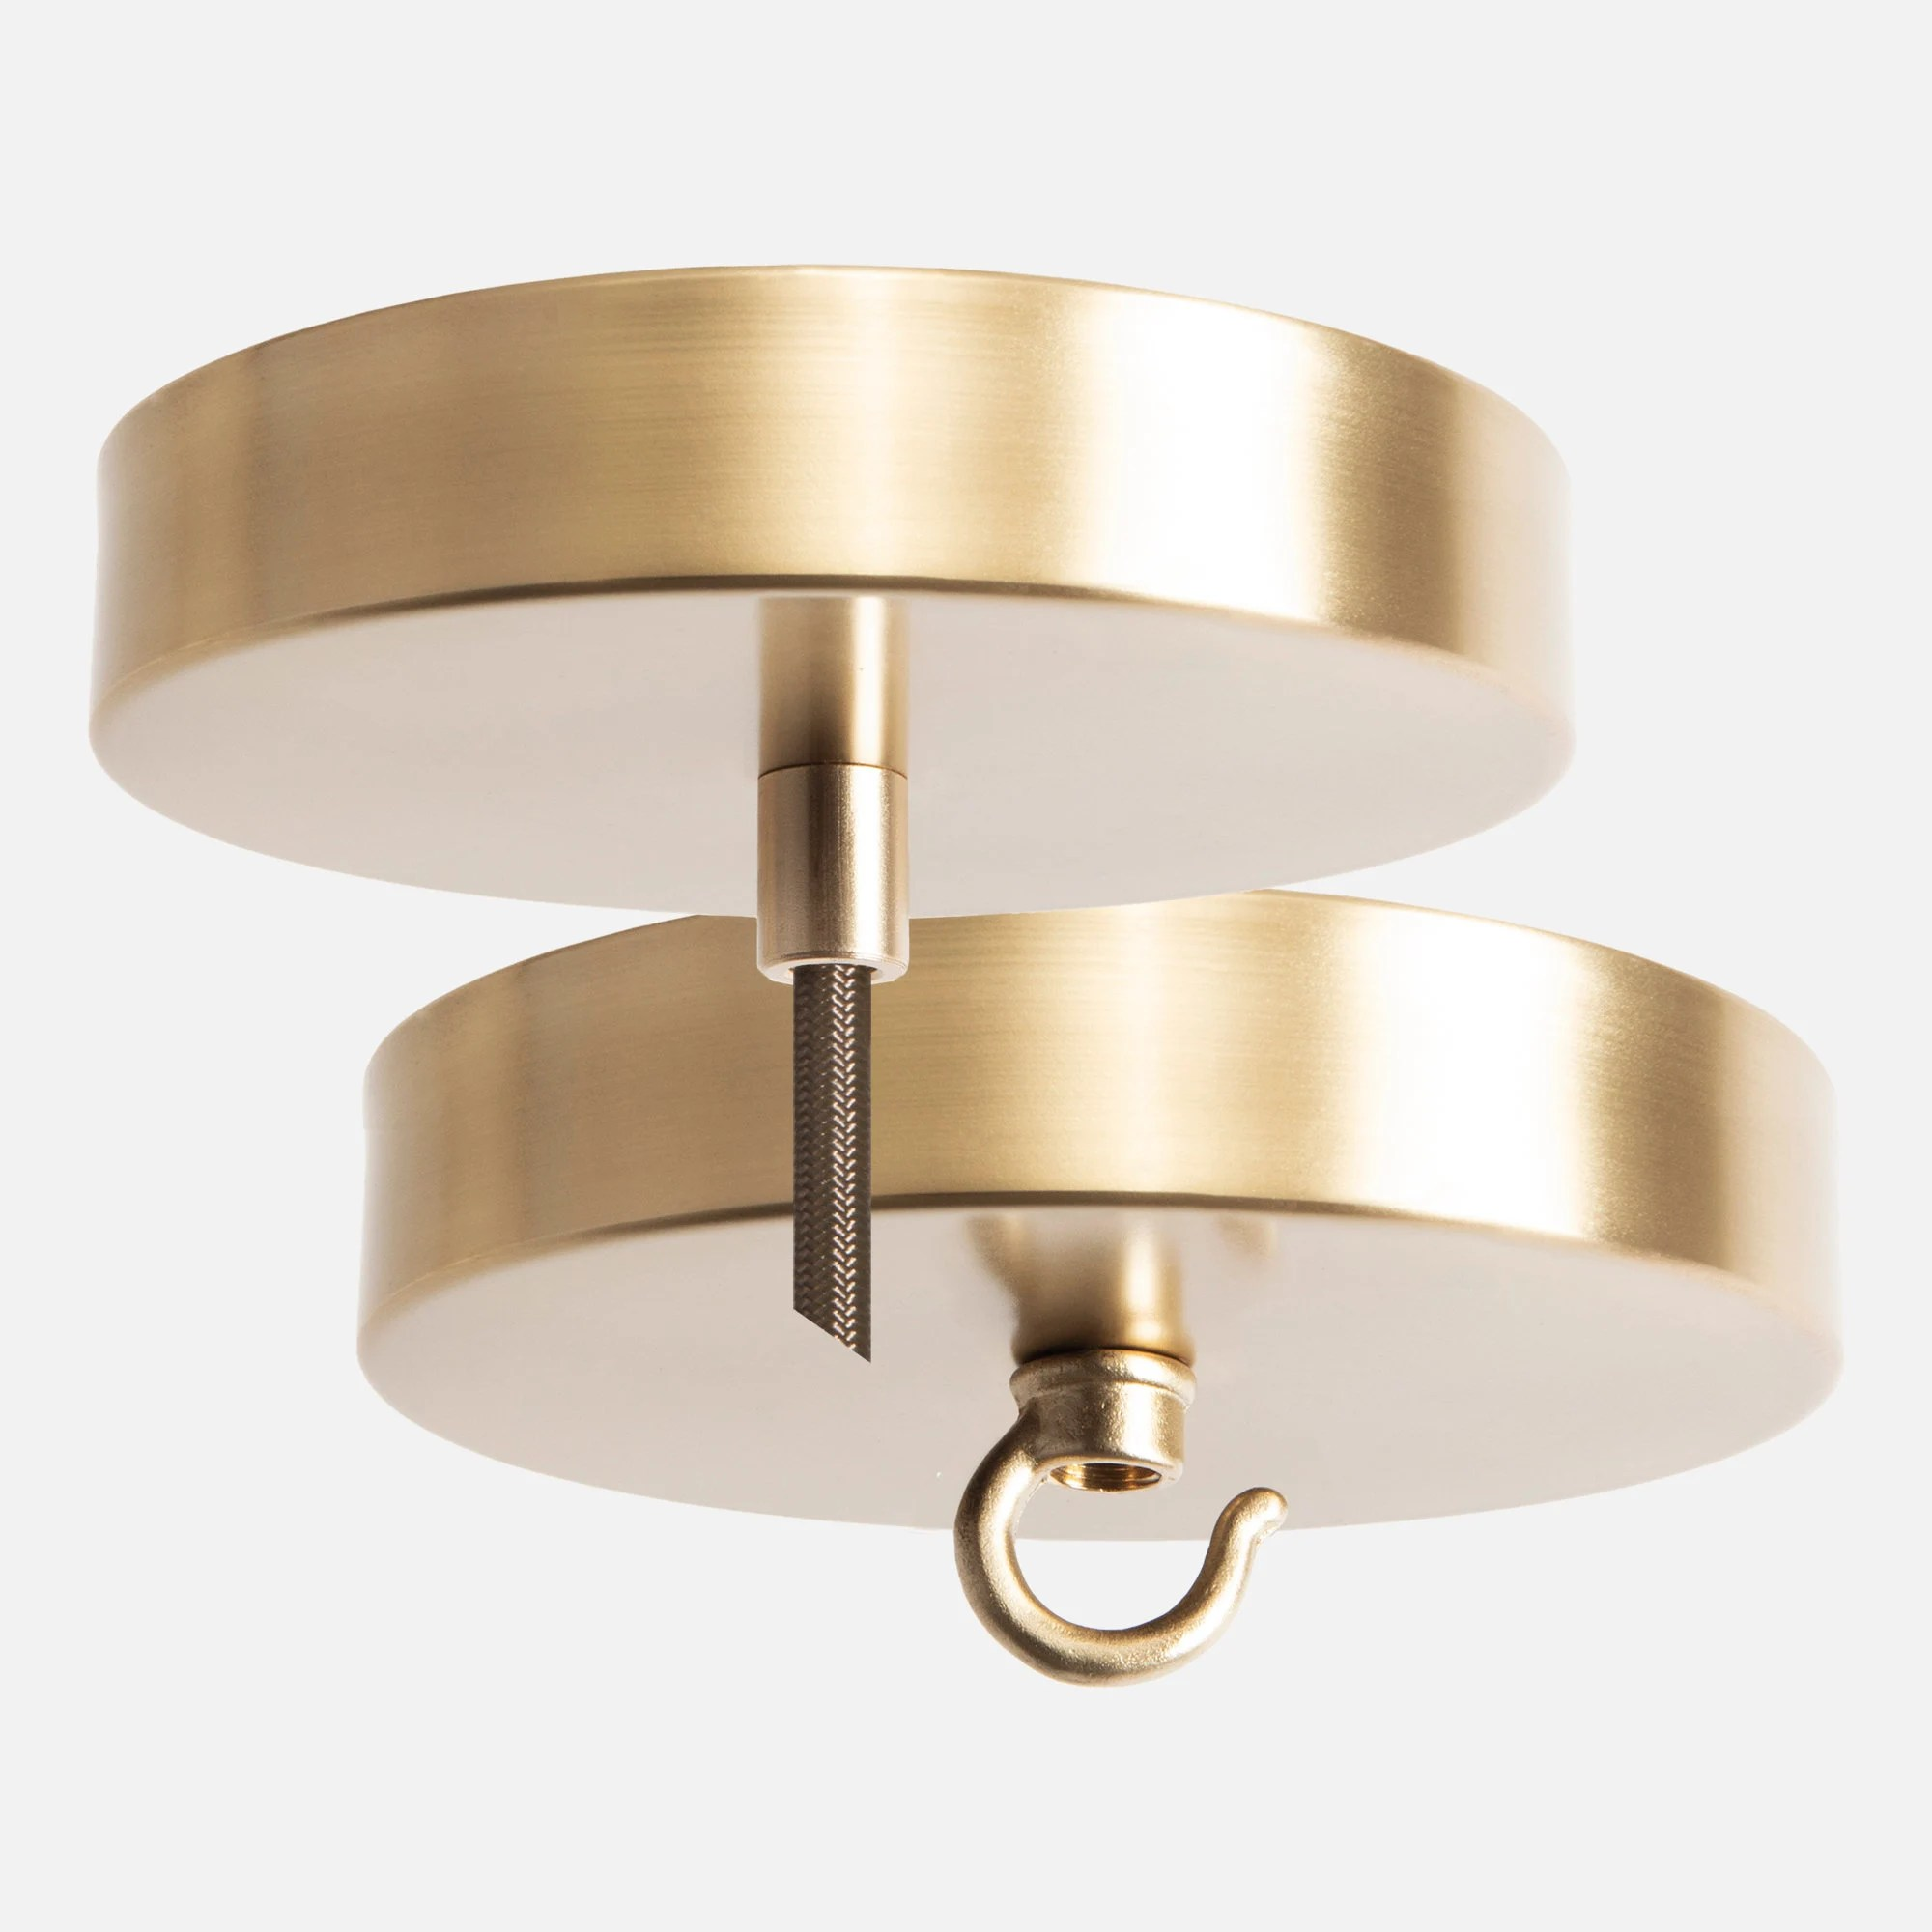 Ceiling Light Canopy Brass Ceiling Canopy Kit Pendant Light Canopy Kit Pendant